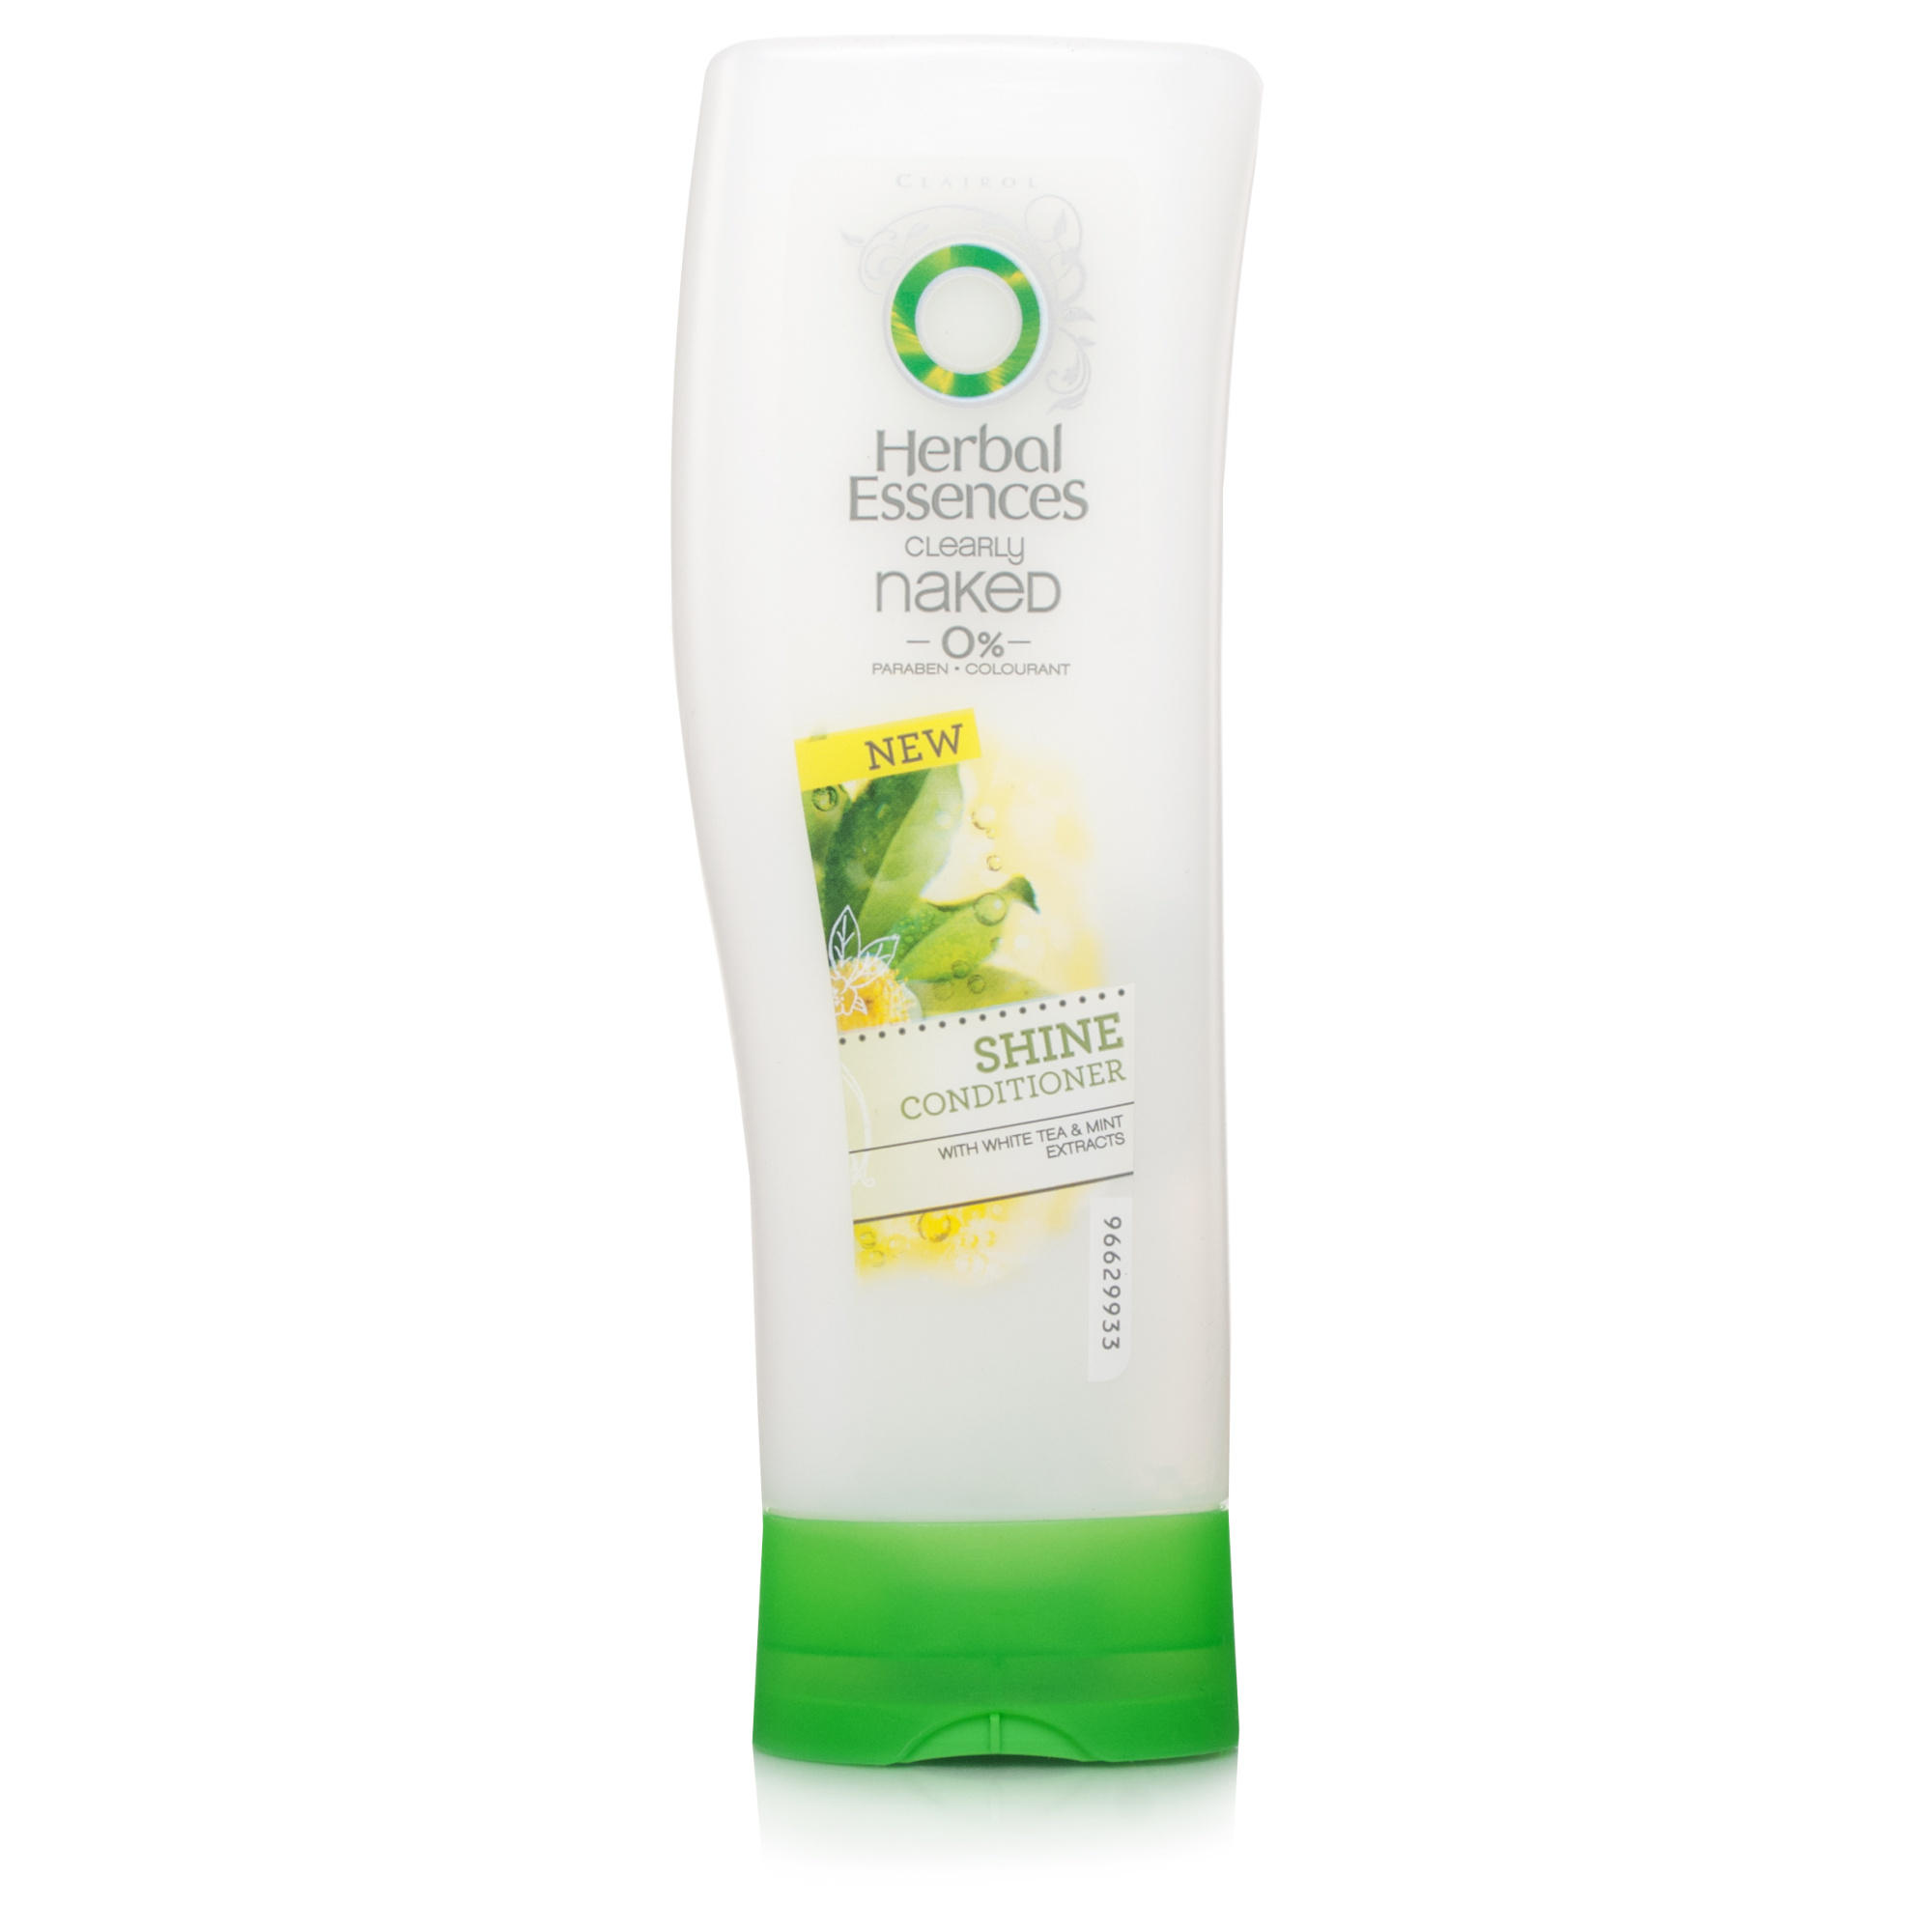 Herbal Essence Naked Shine Conditioner